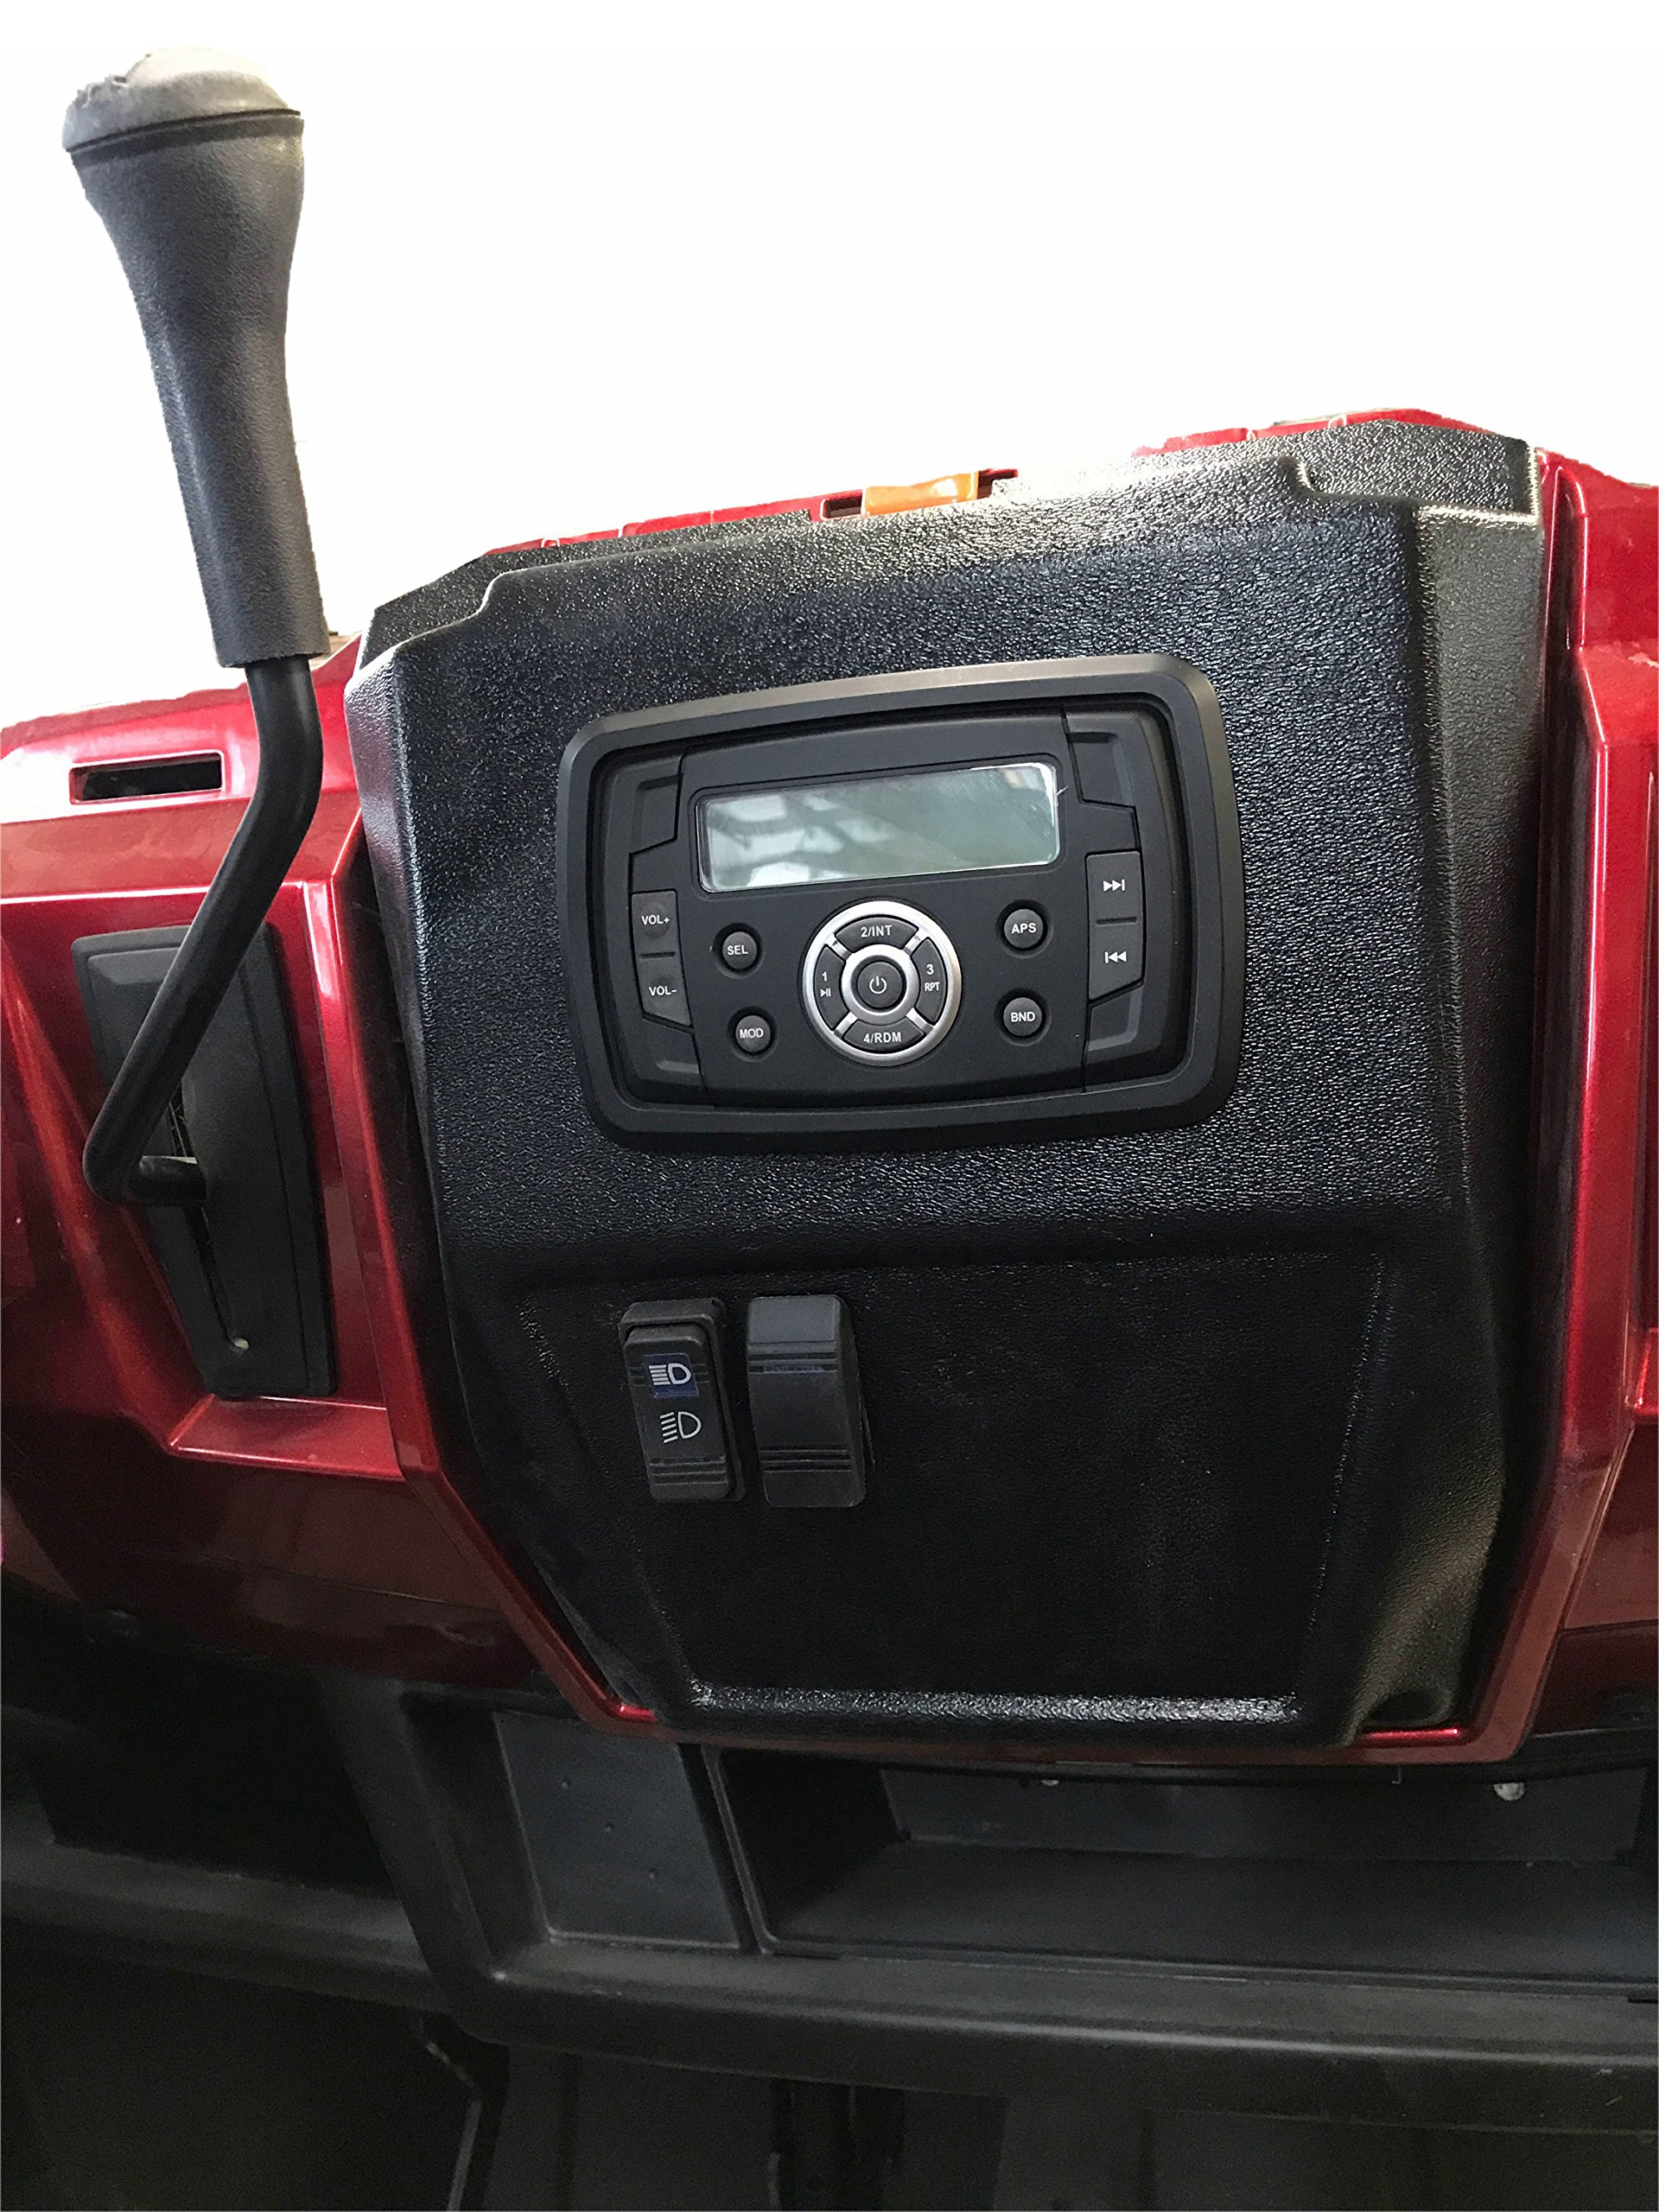 Polaris Ranger In-Dash Stereo Panel P/N: 13513-Blank-Black